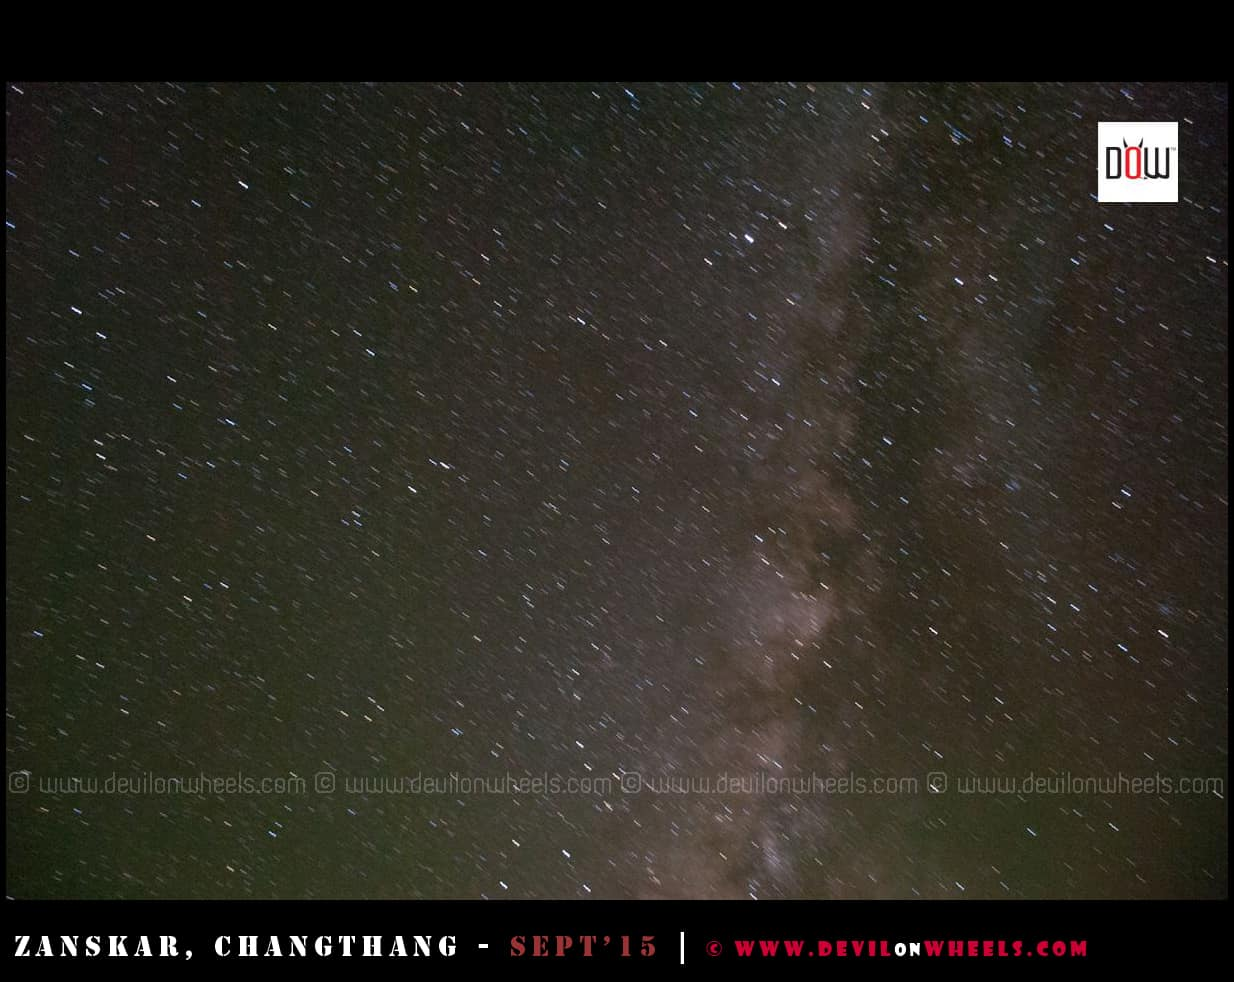 Milkyway as seen from Hanle